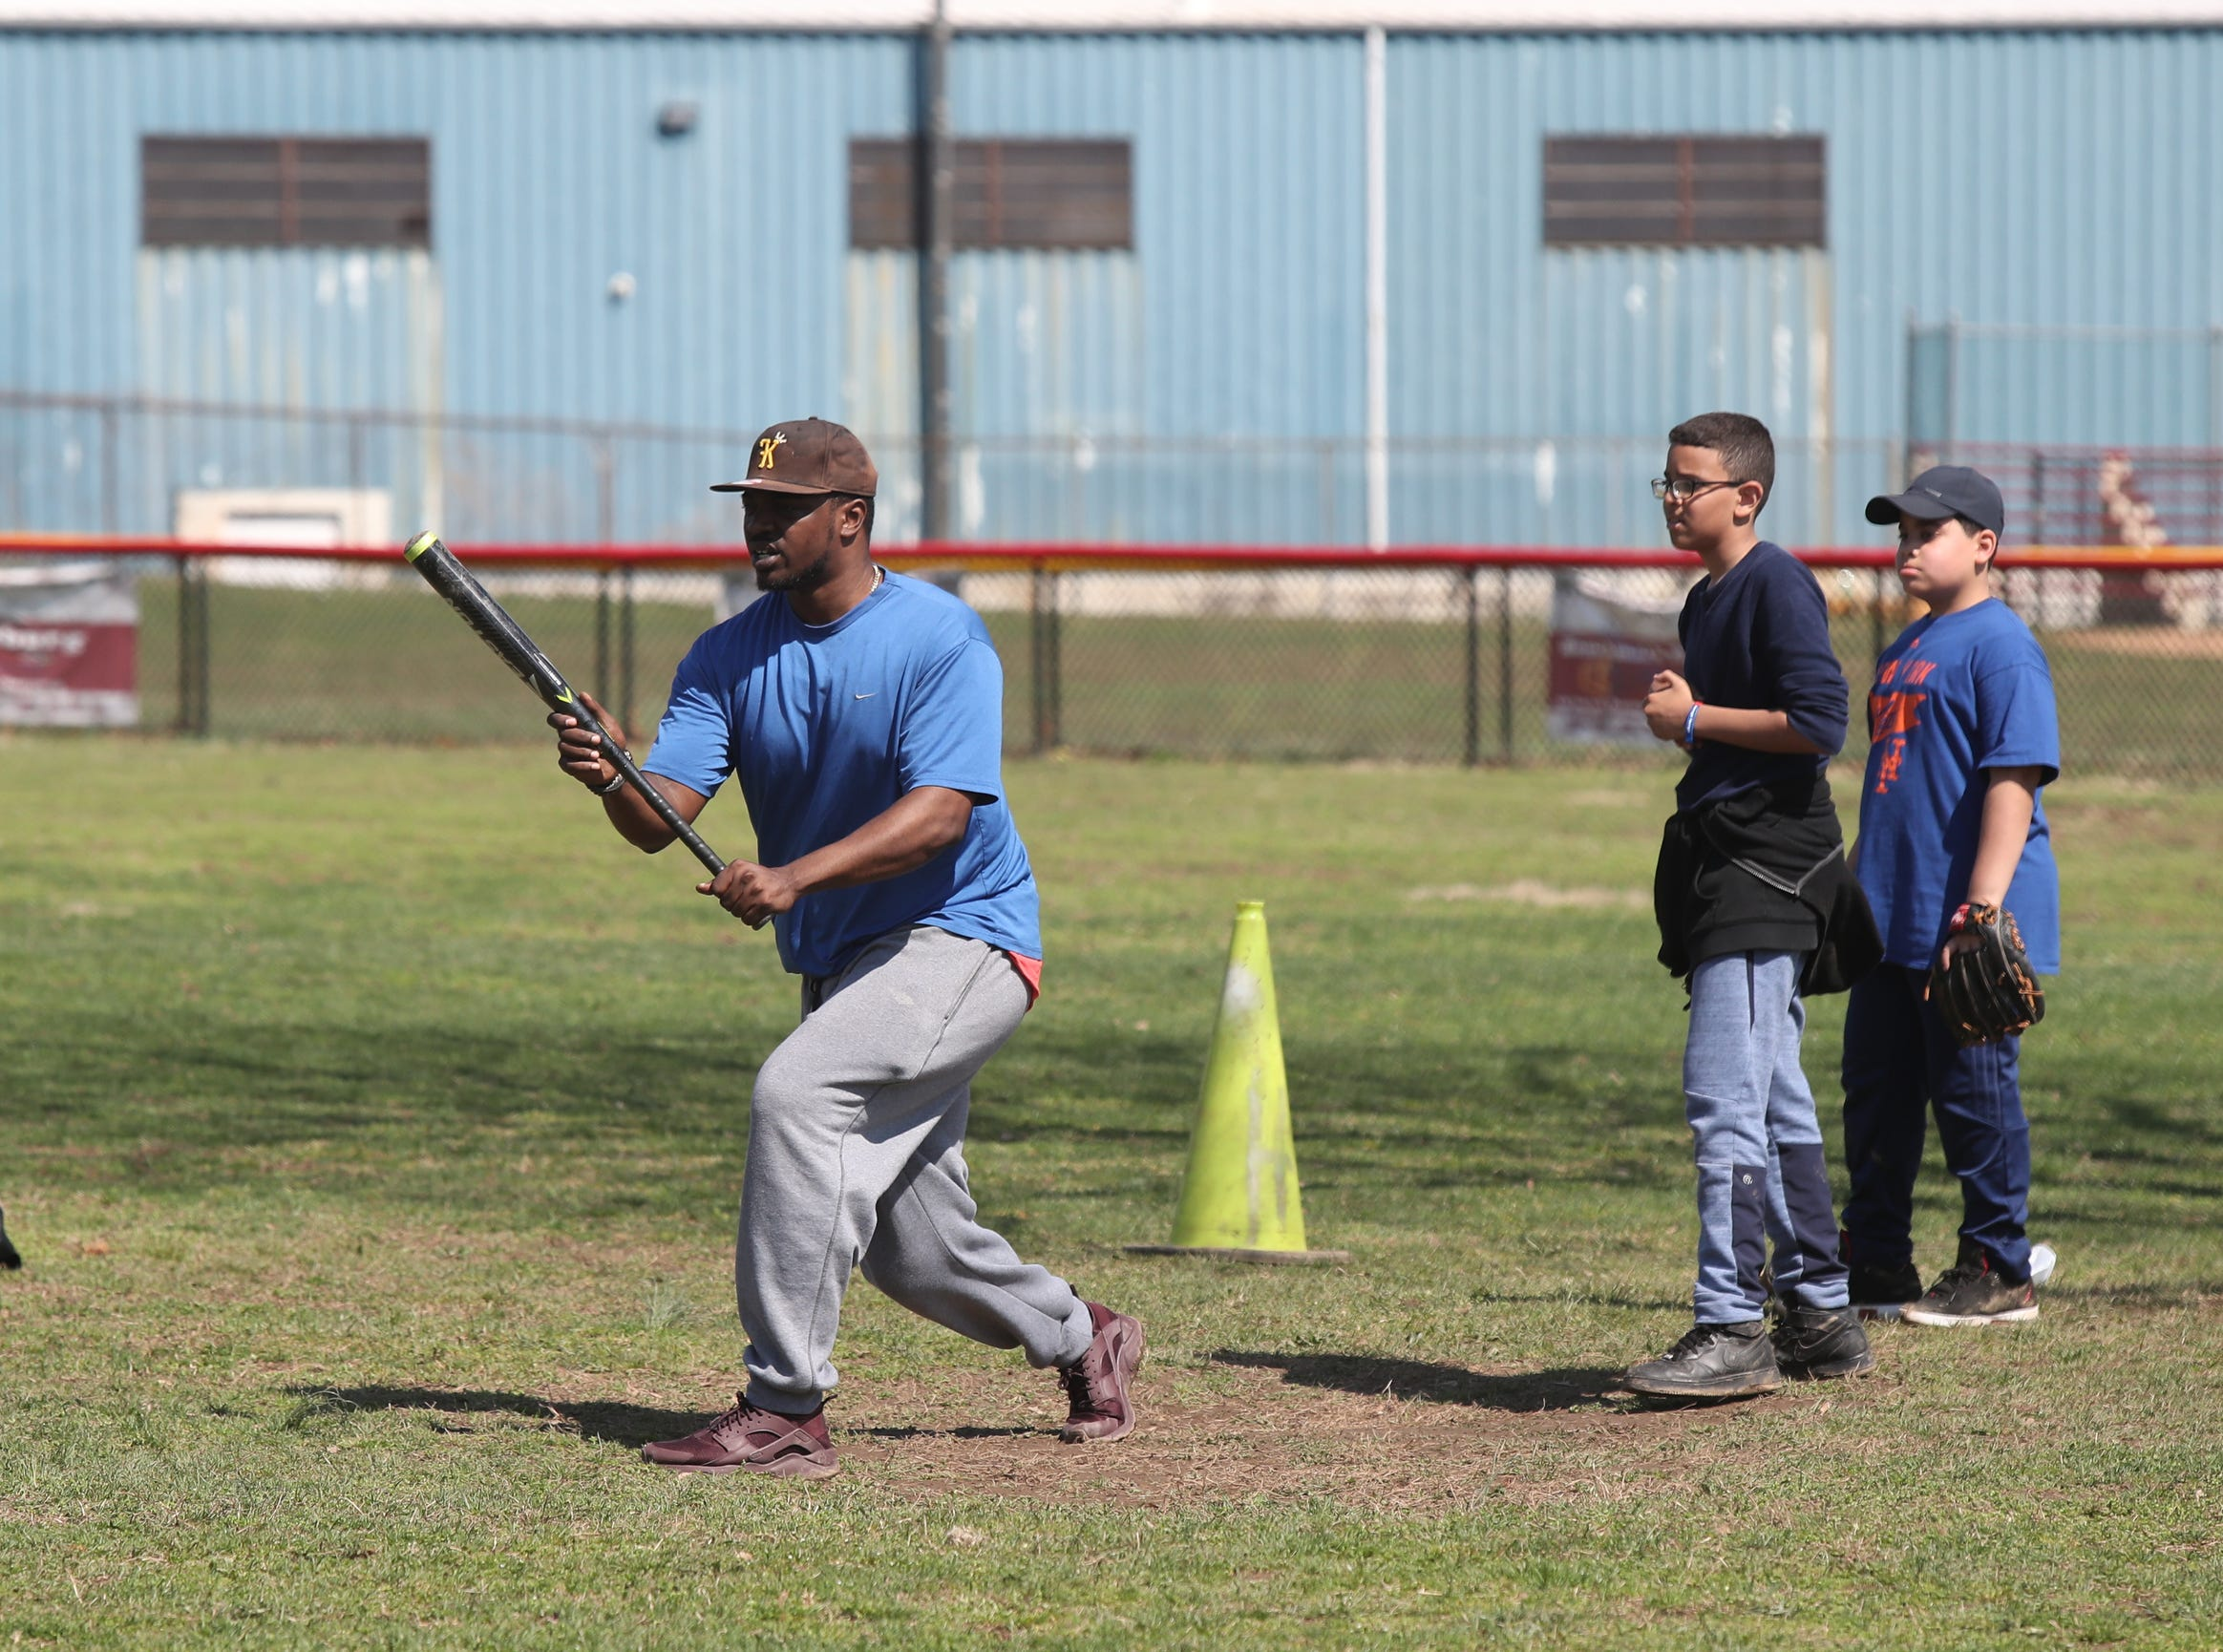 Coach Lawrence Taylor instructs a player on laying down a bunt during little league practice annual Jackie Robinson Day  at Brush Park on Saturday, April 13, 2019.